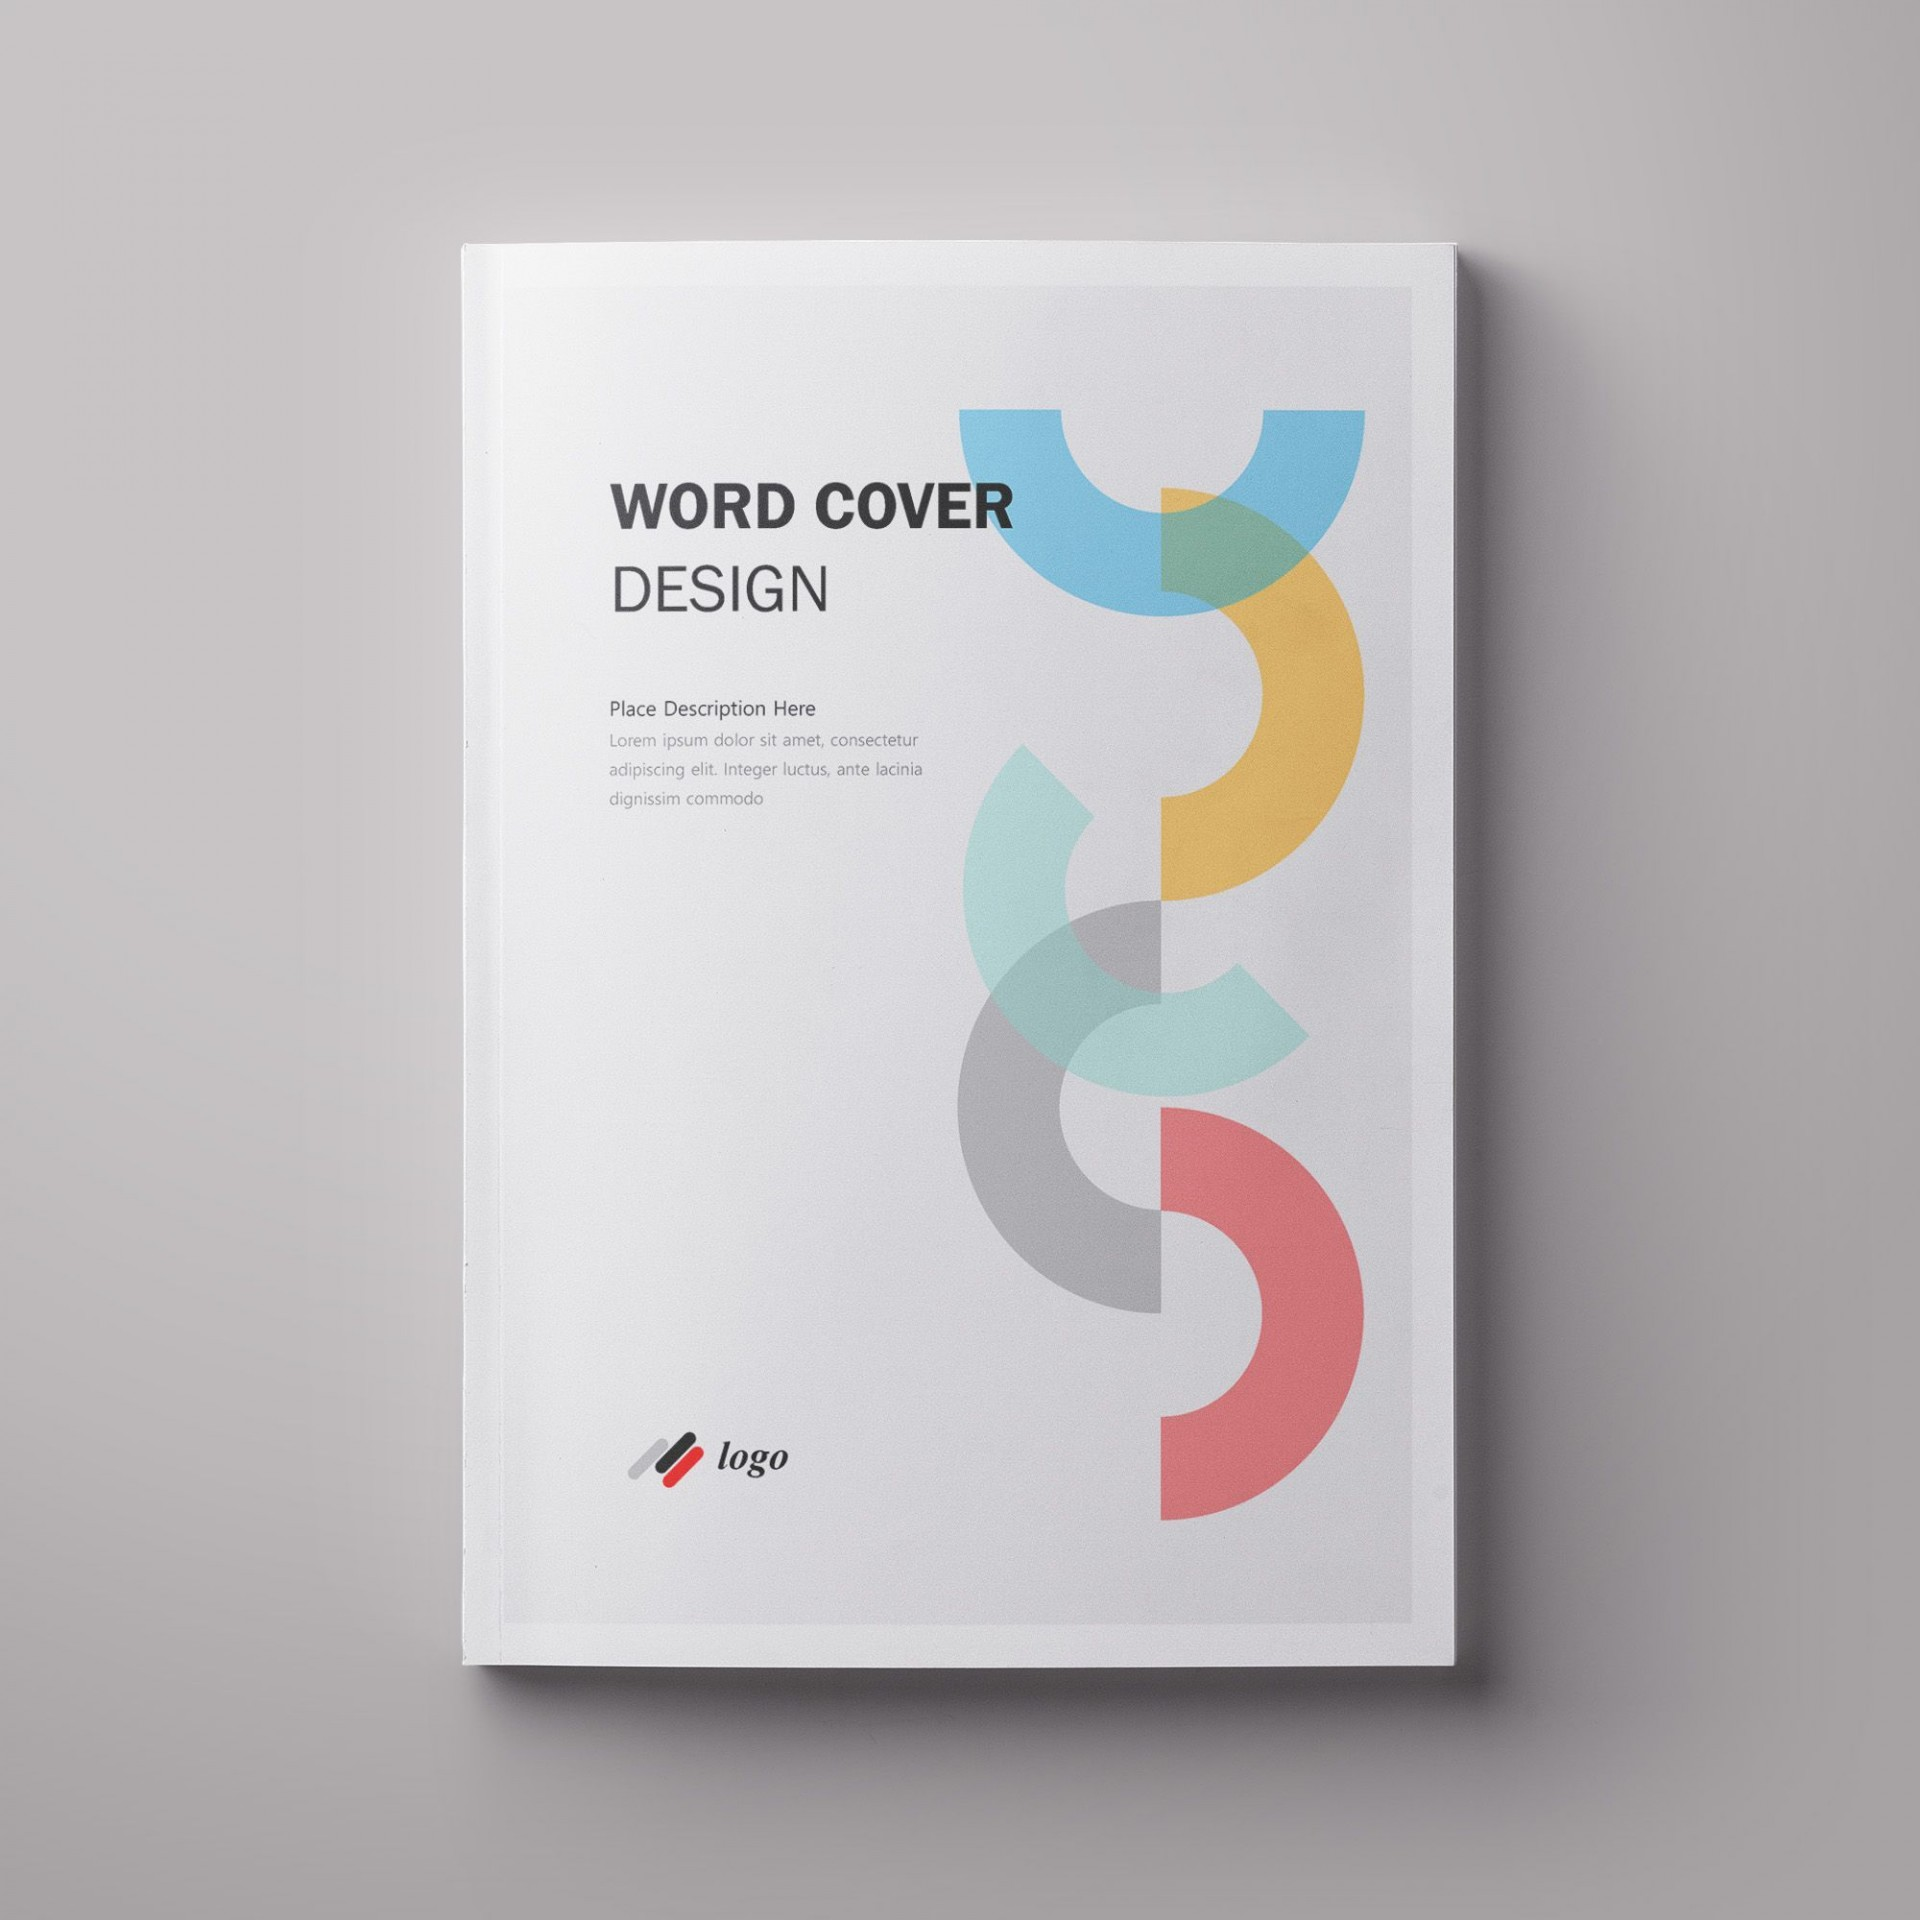 000 Incredible Book Front Page Design Template Free Download Concept  Cover Psd1920